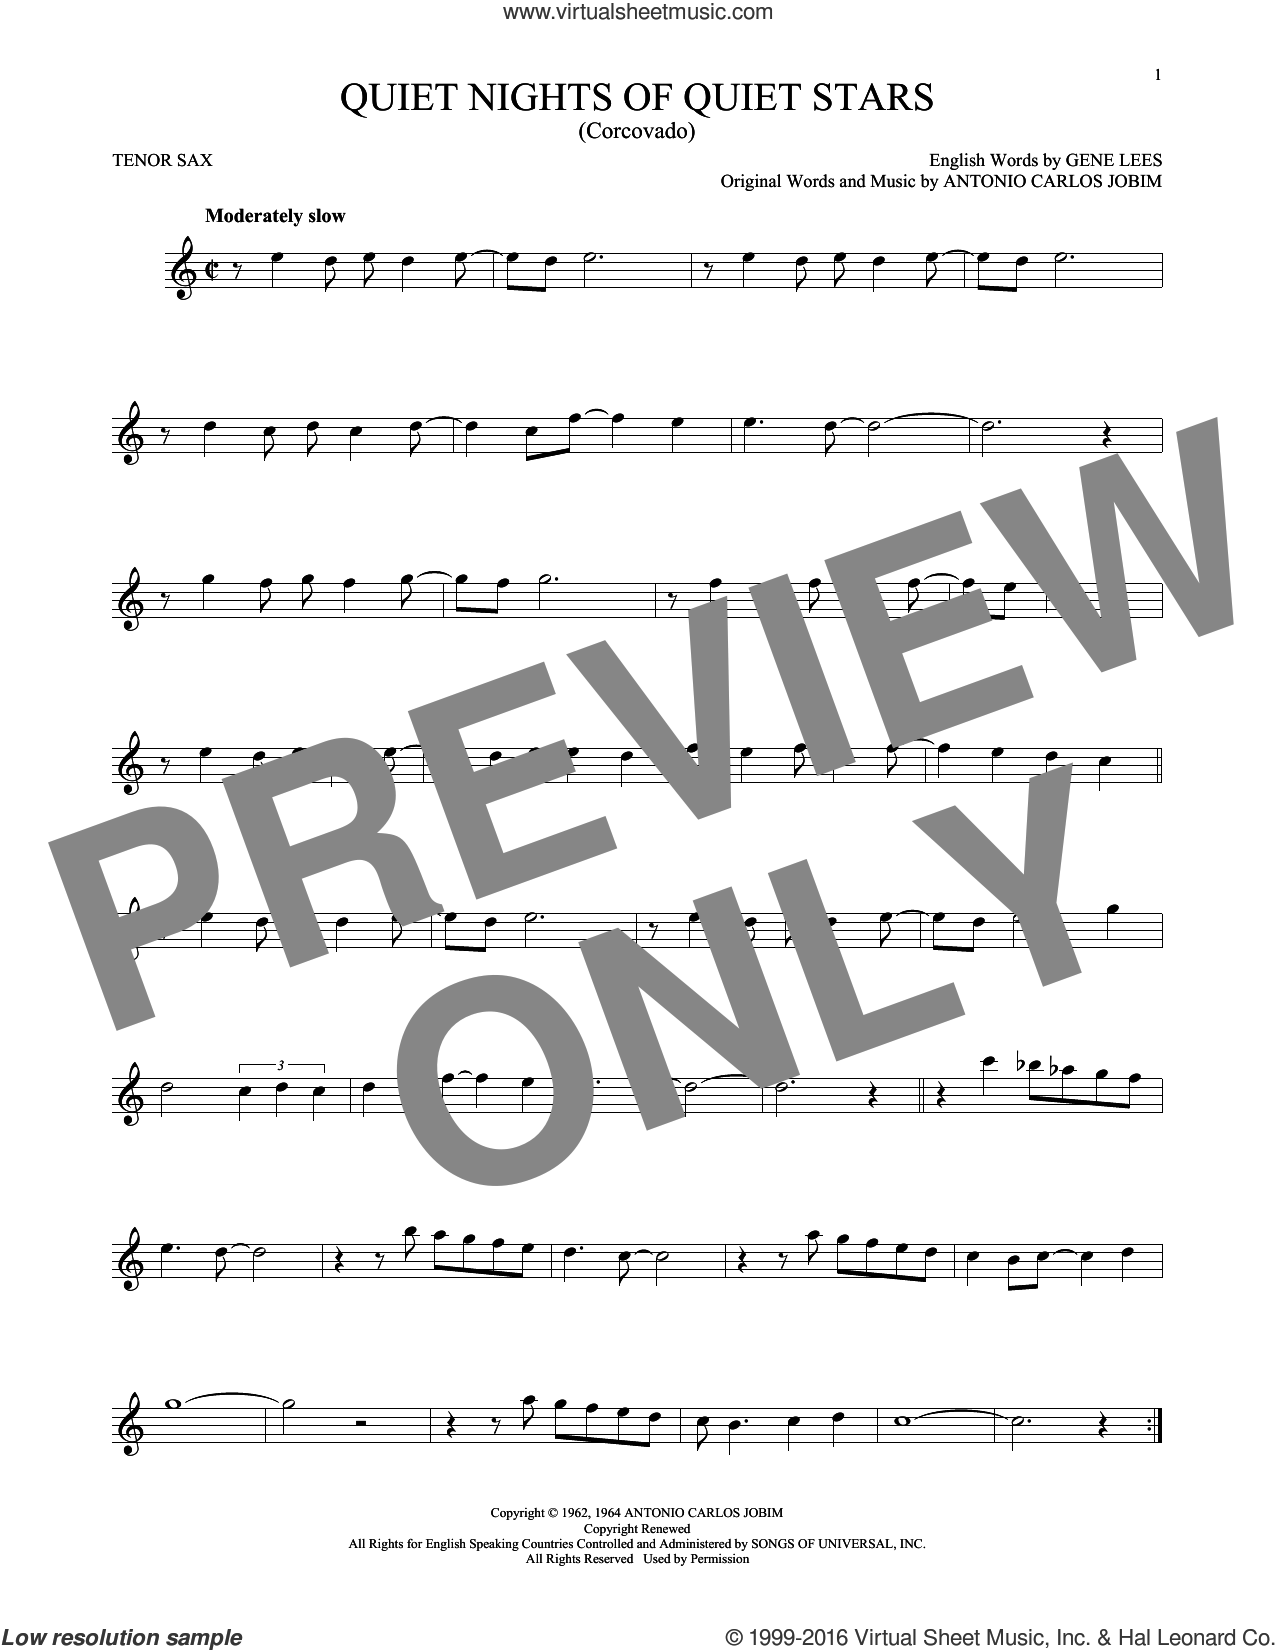 Quiet Nights Of Quiet Stars (Corcovado) sheet music for tenor saxophone solo by Andy Williams, Antonio Carlos Jobim and Eugene John Lees, intermediate skill level